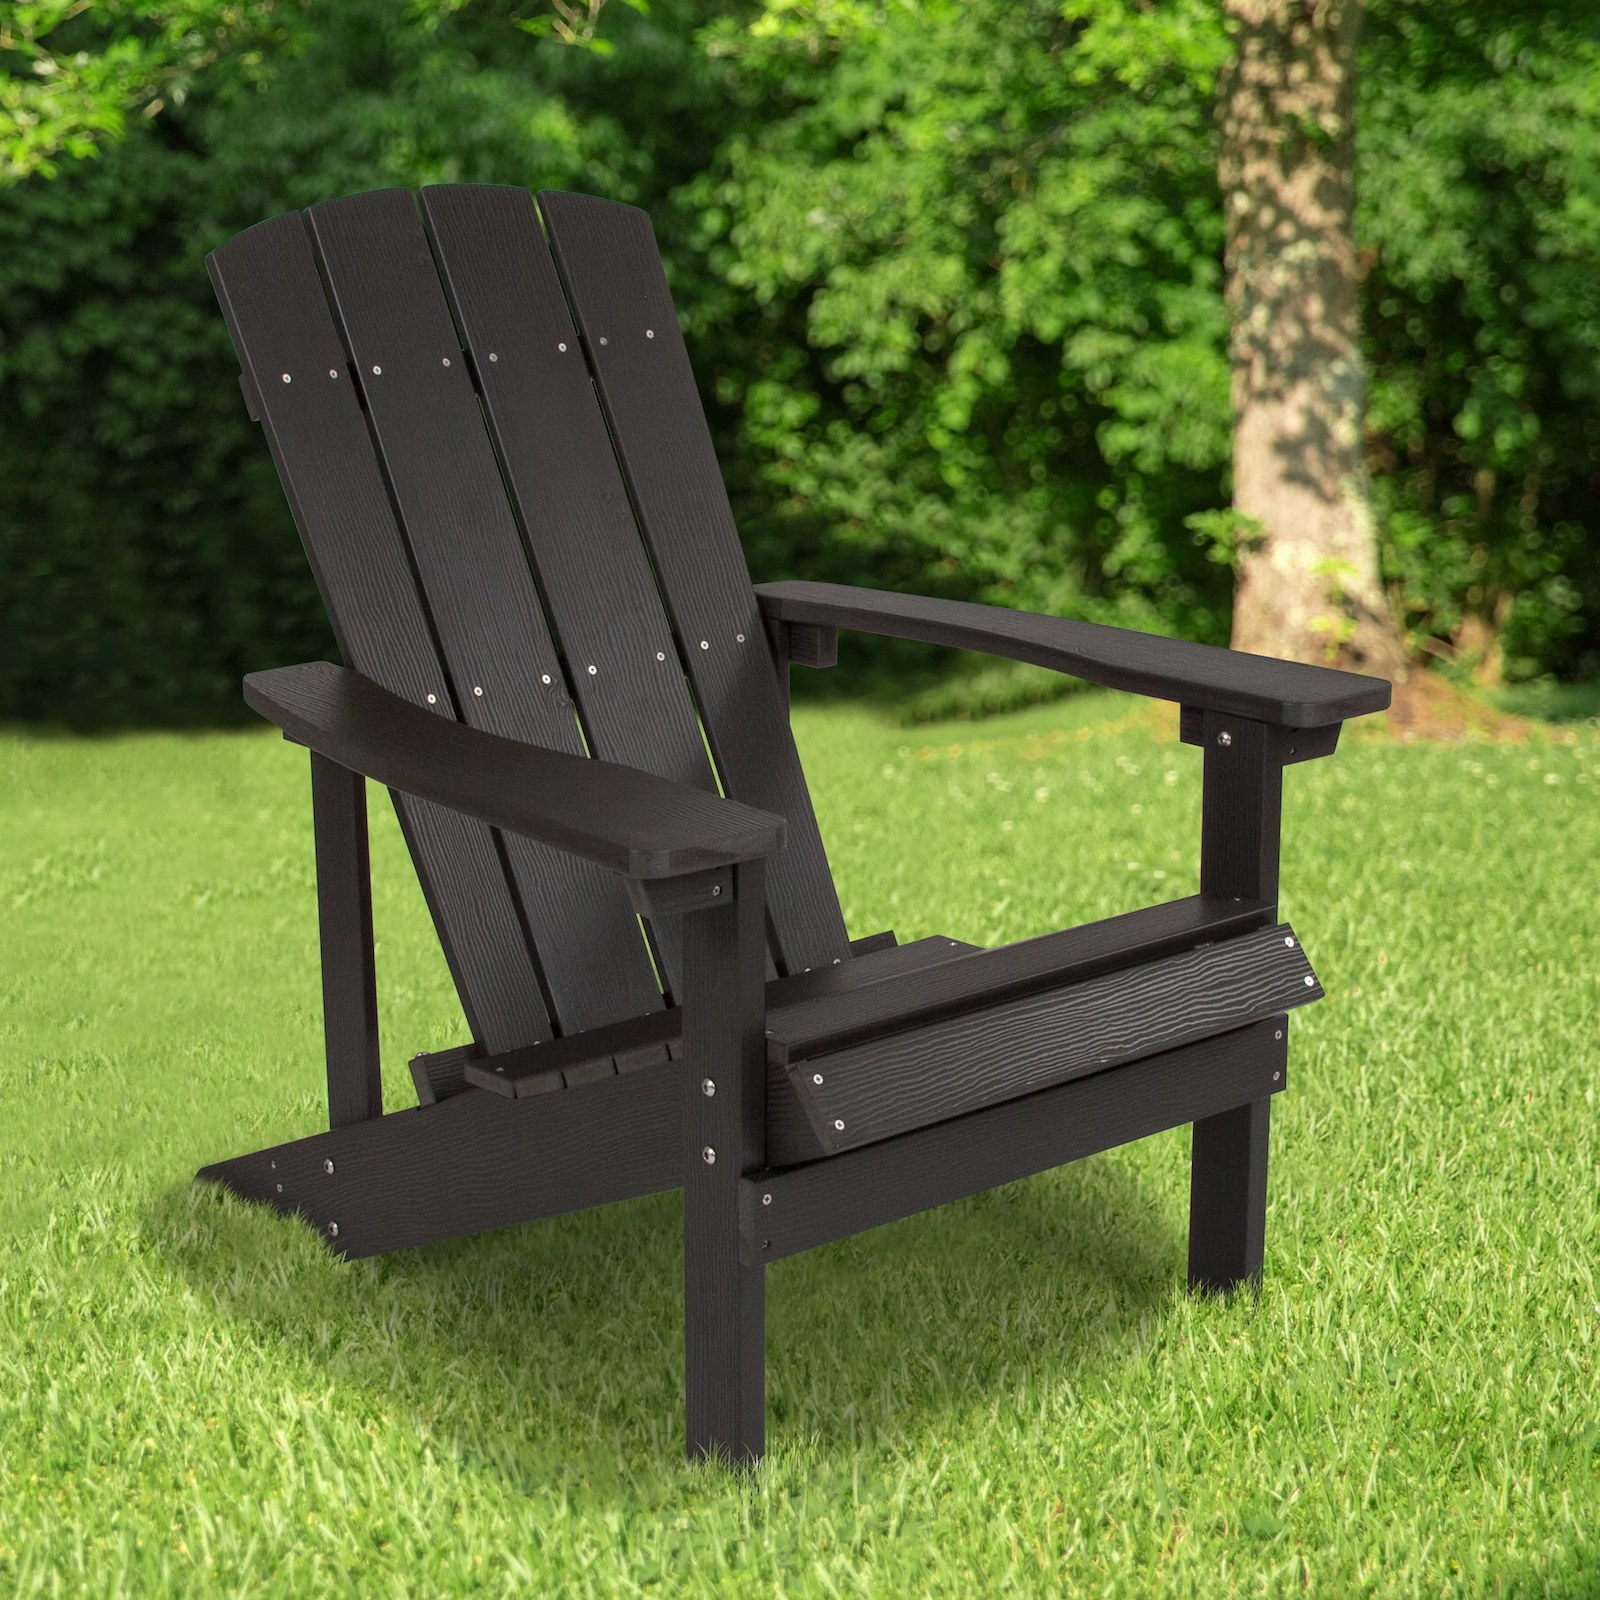 The black chair with a slanted back and arms on either side